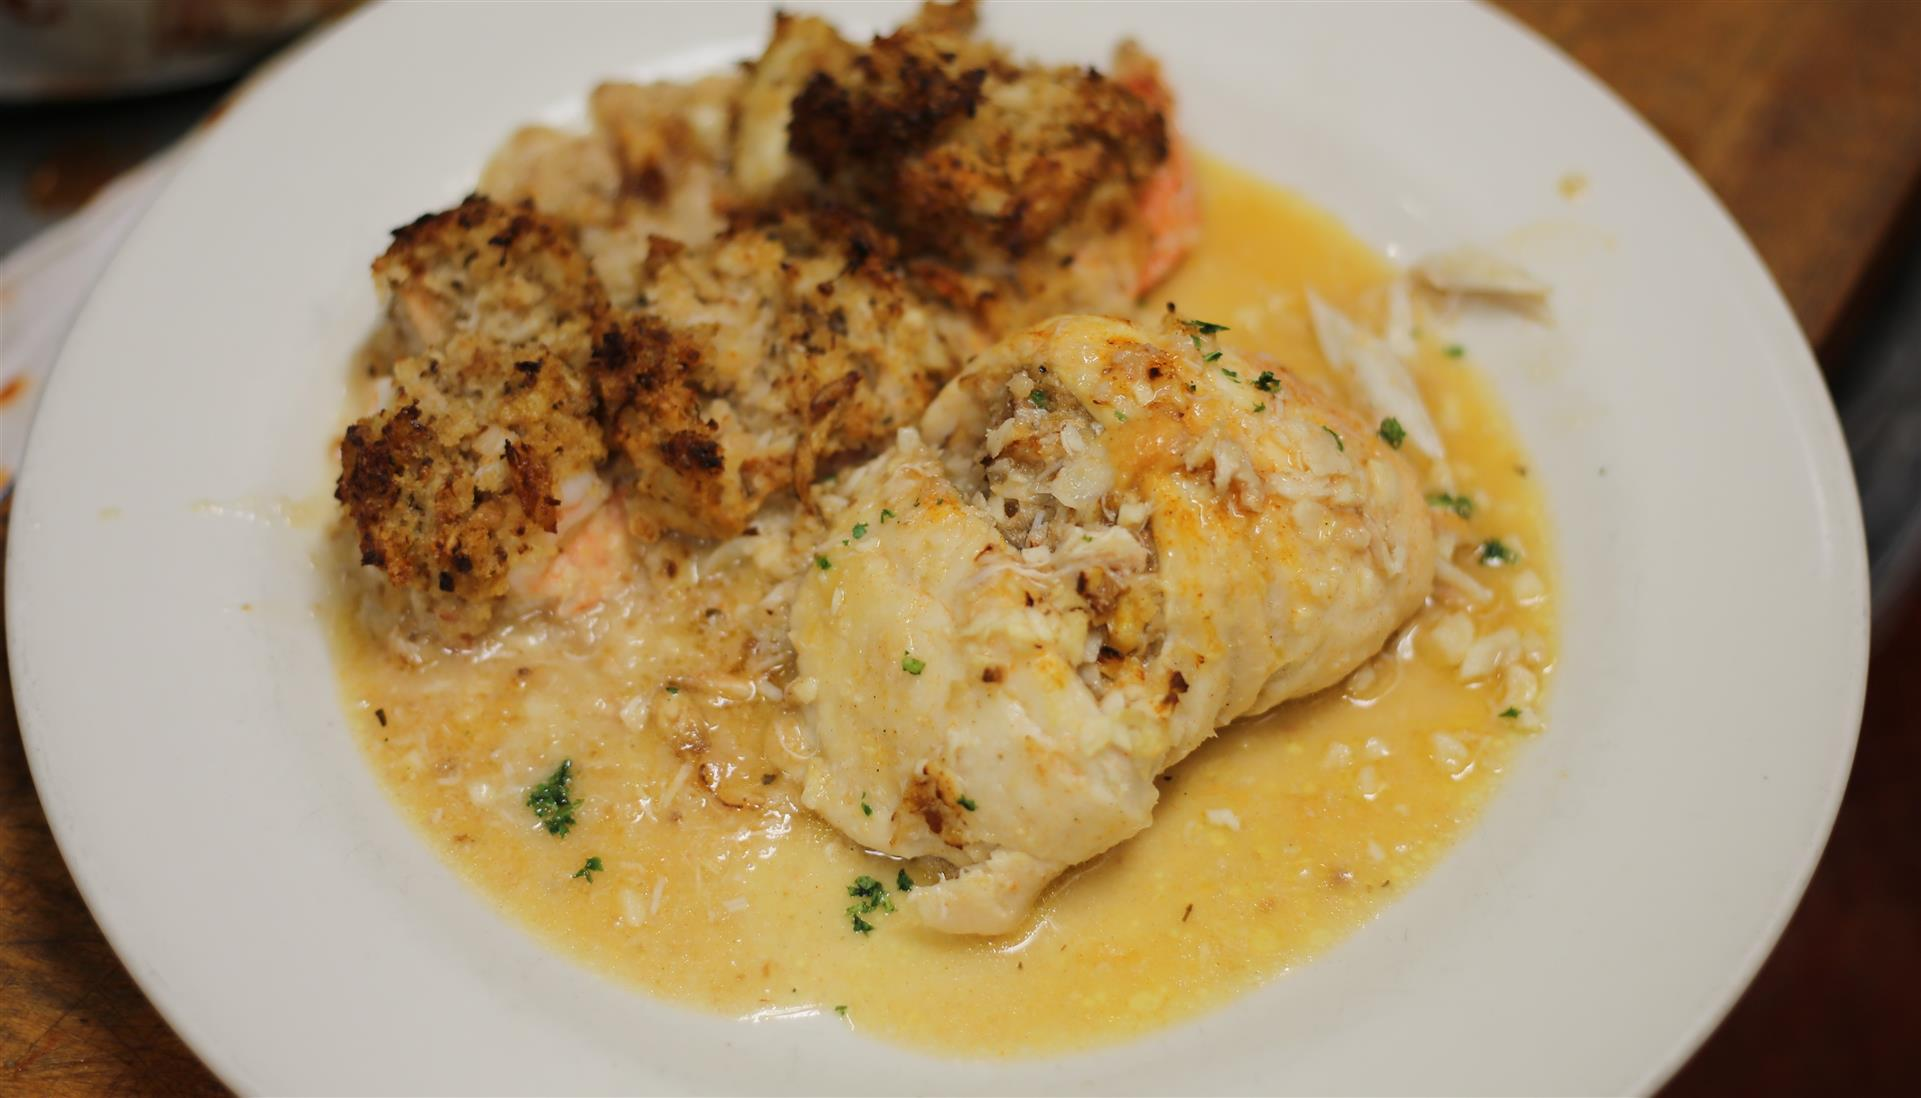 Stuffed Shrump and Sole in Scampi Sauce.